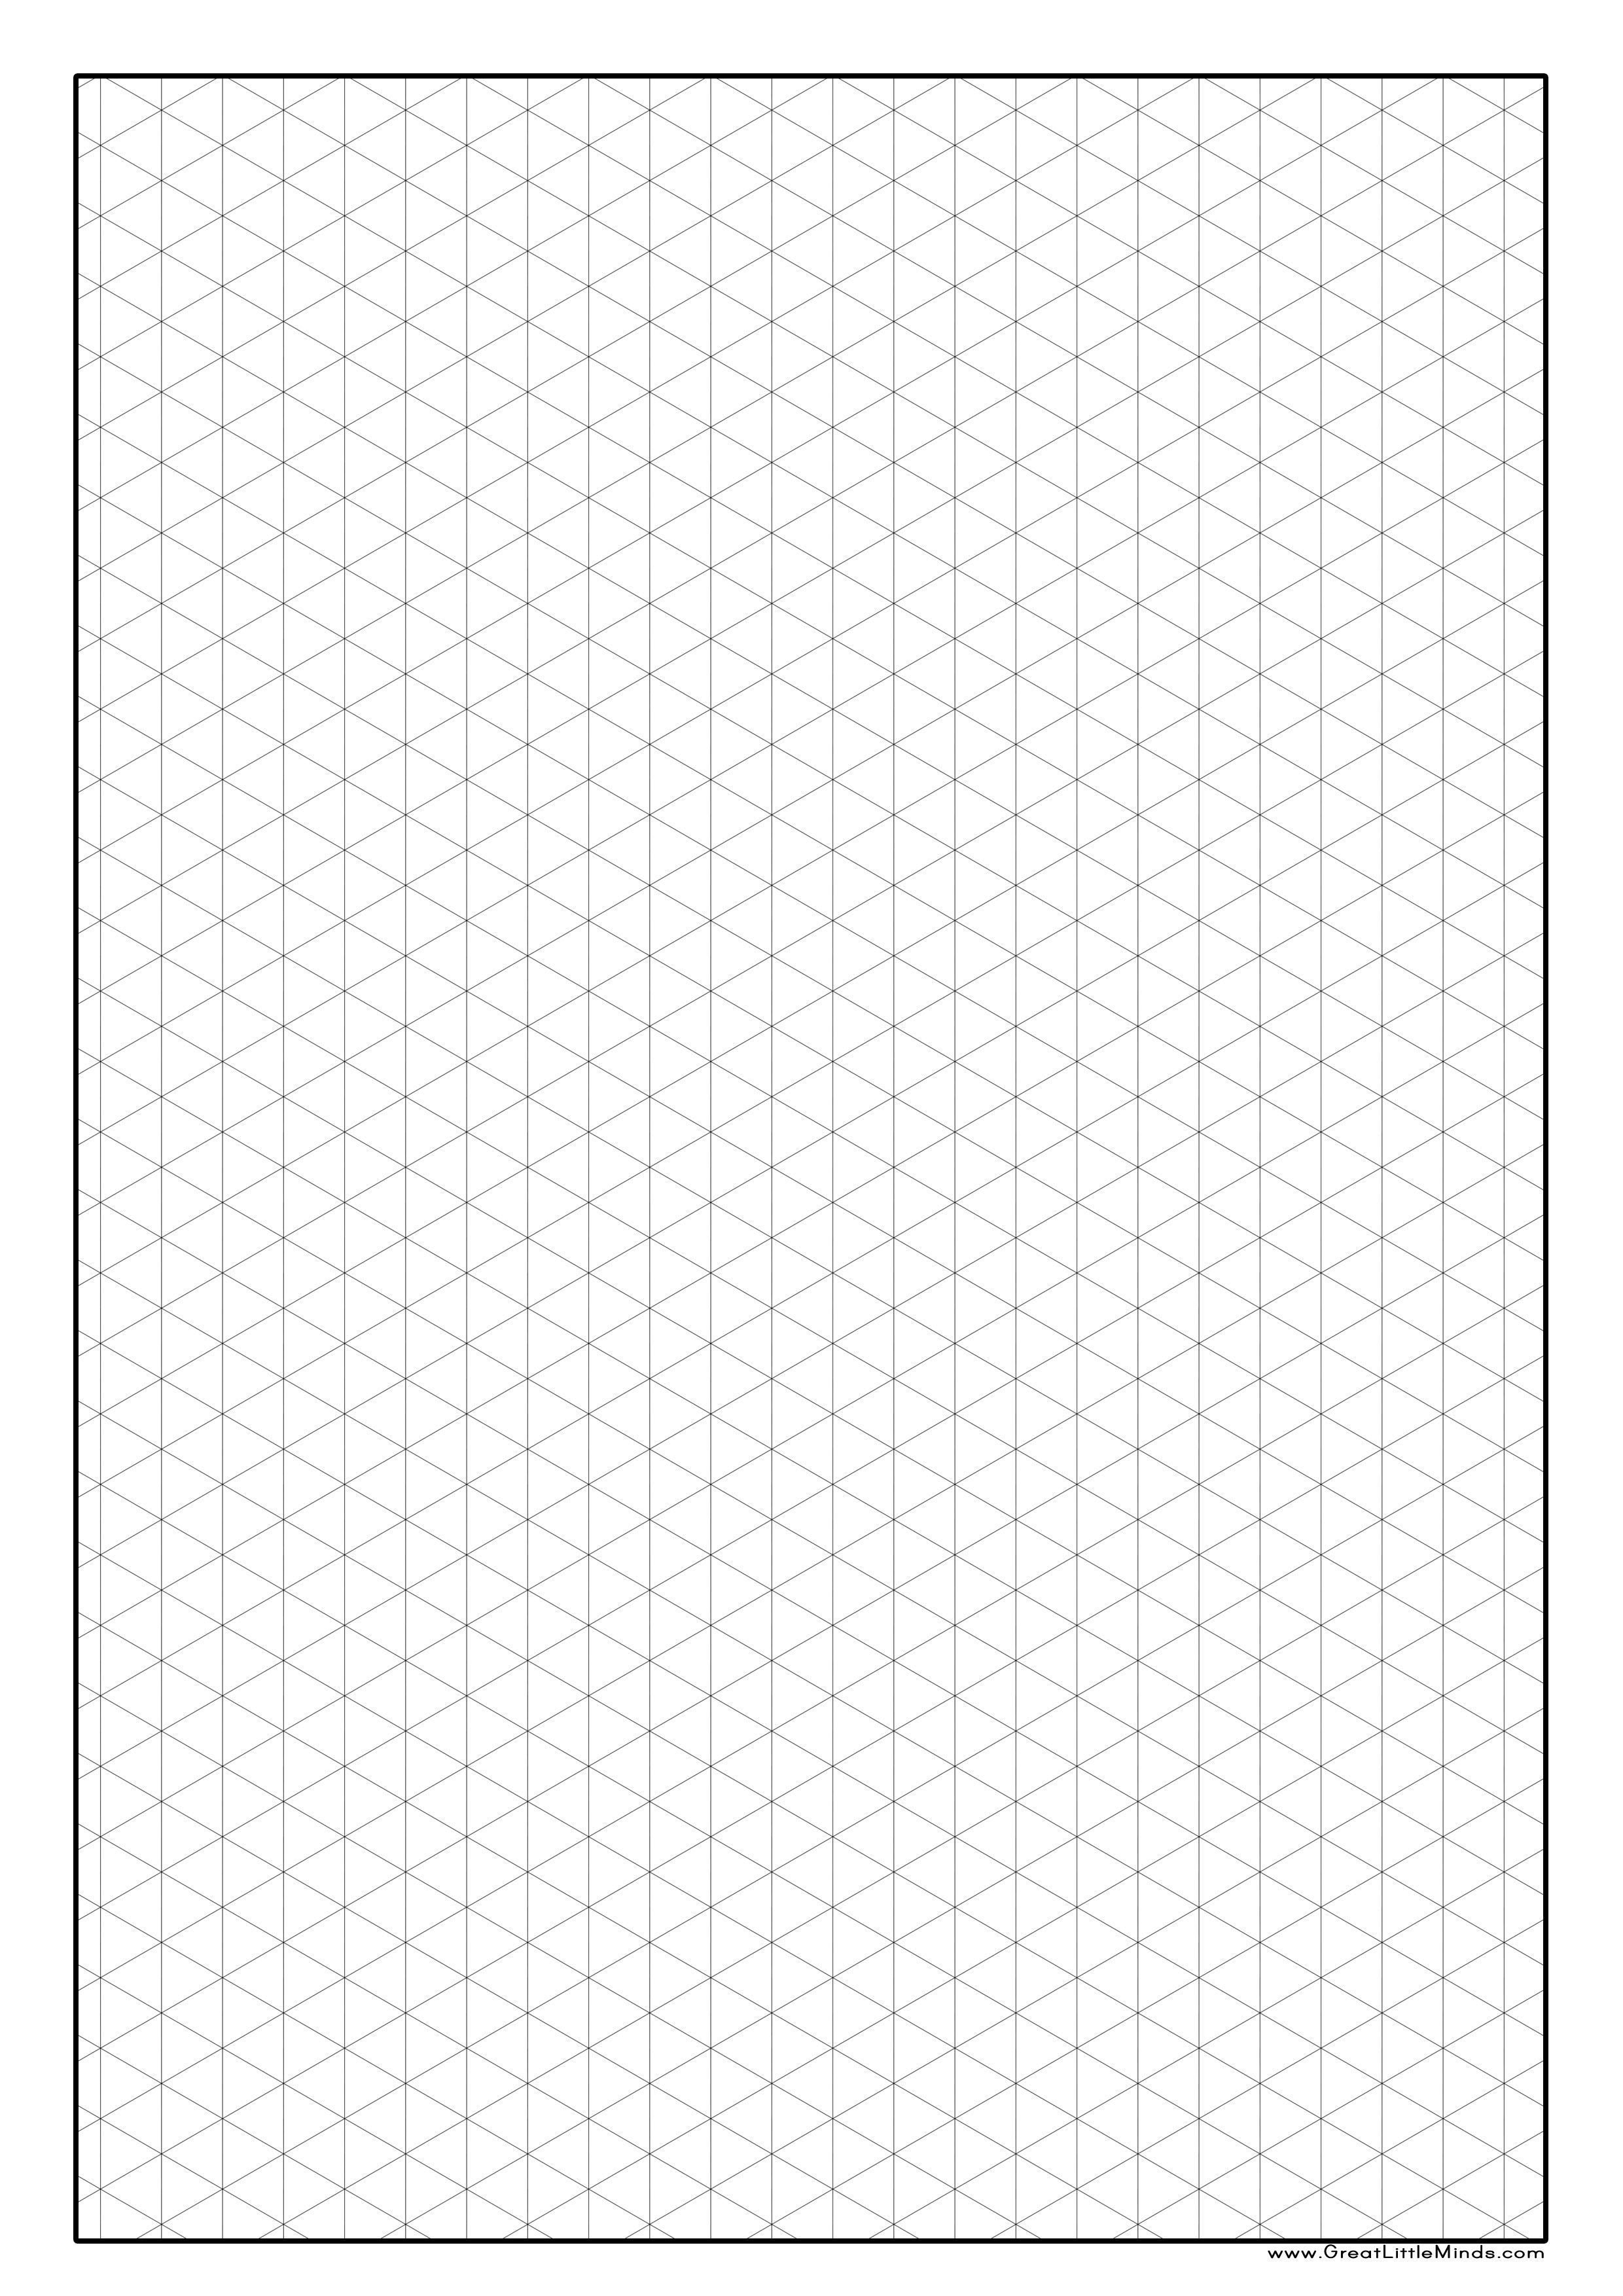 Grid Art Worksheet Printable Animals